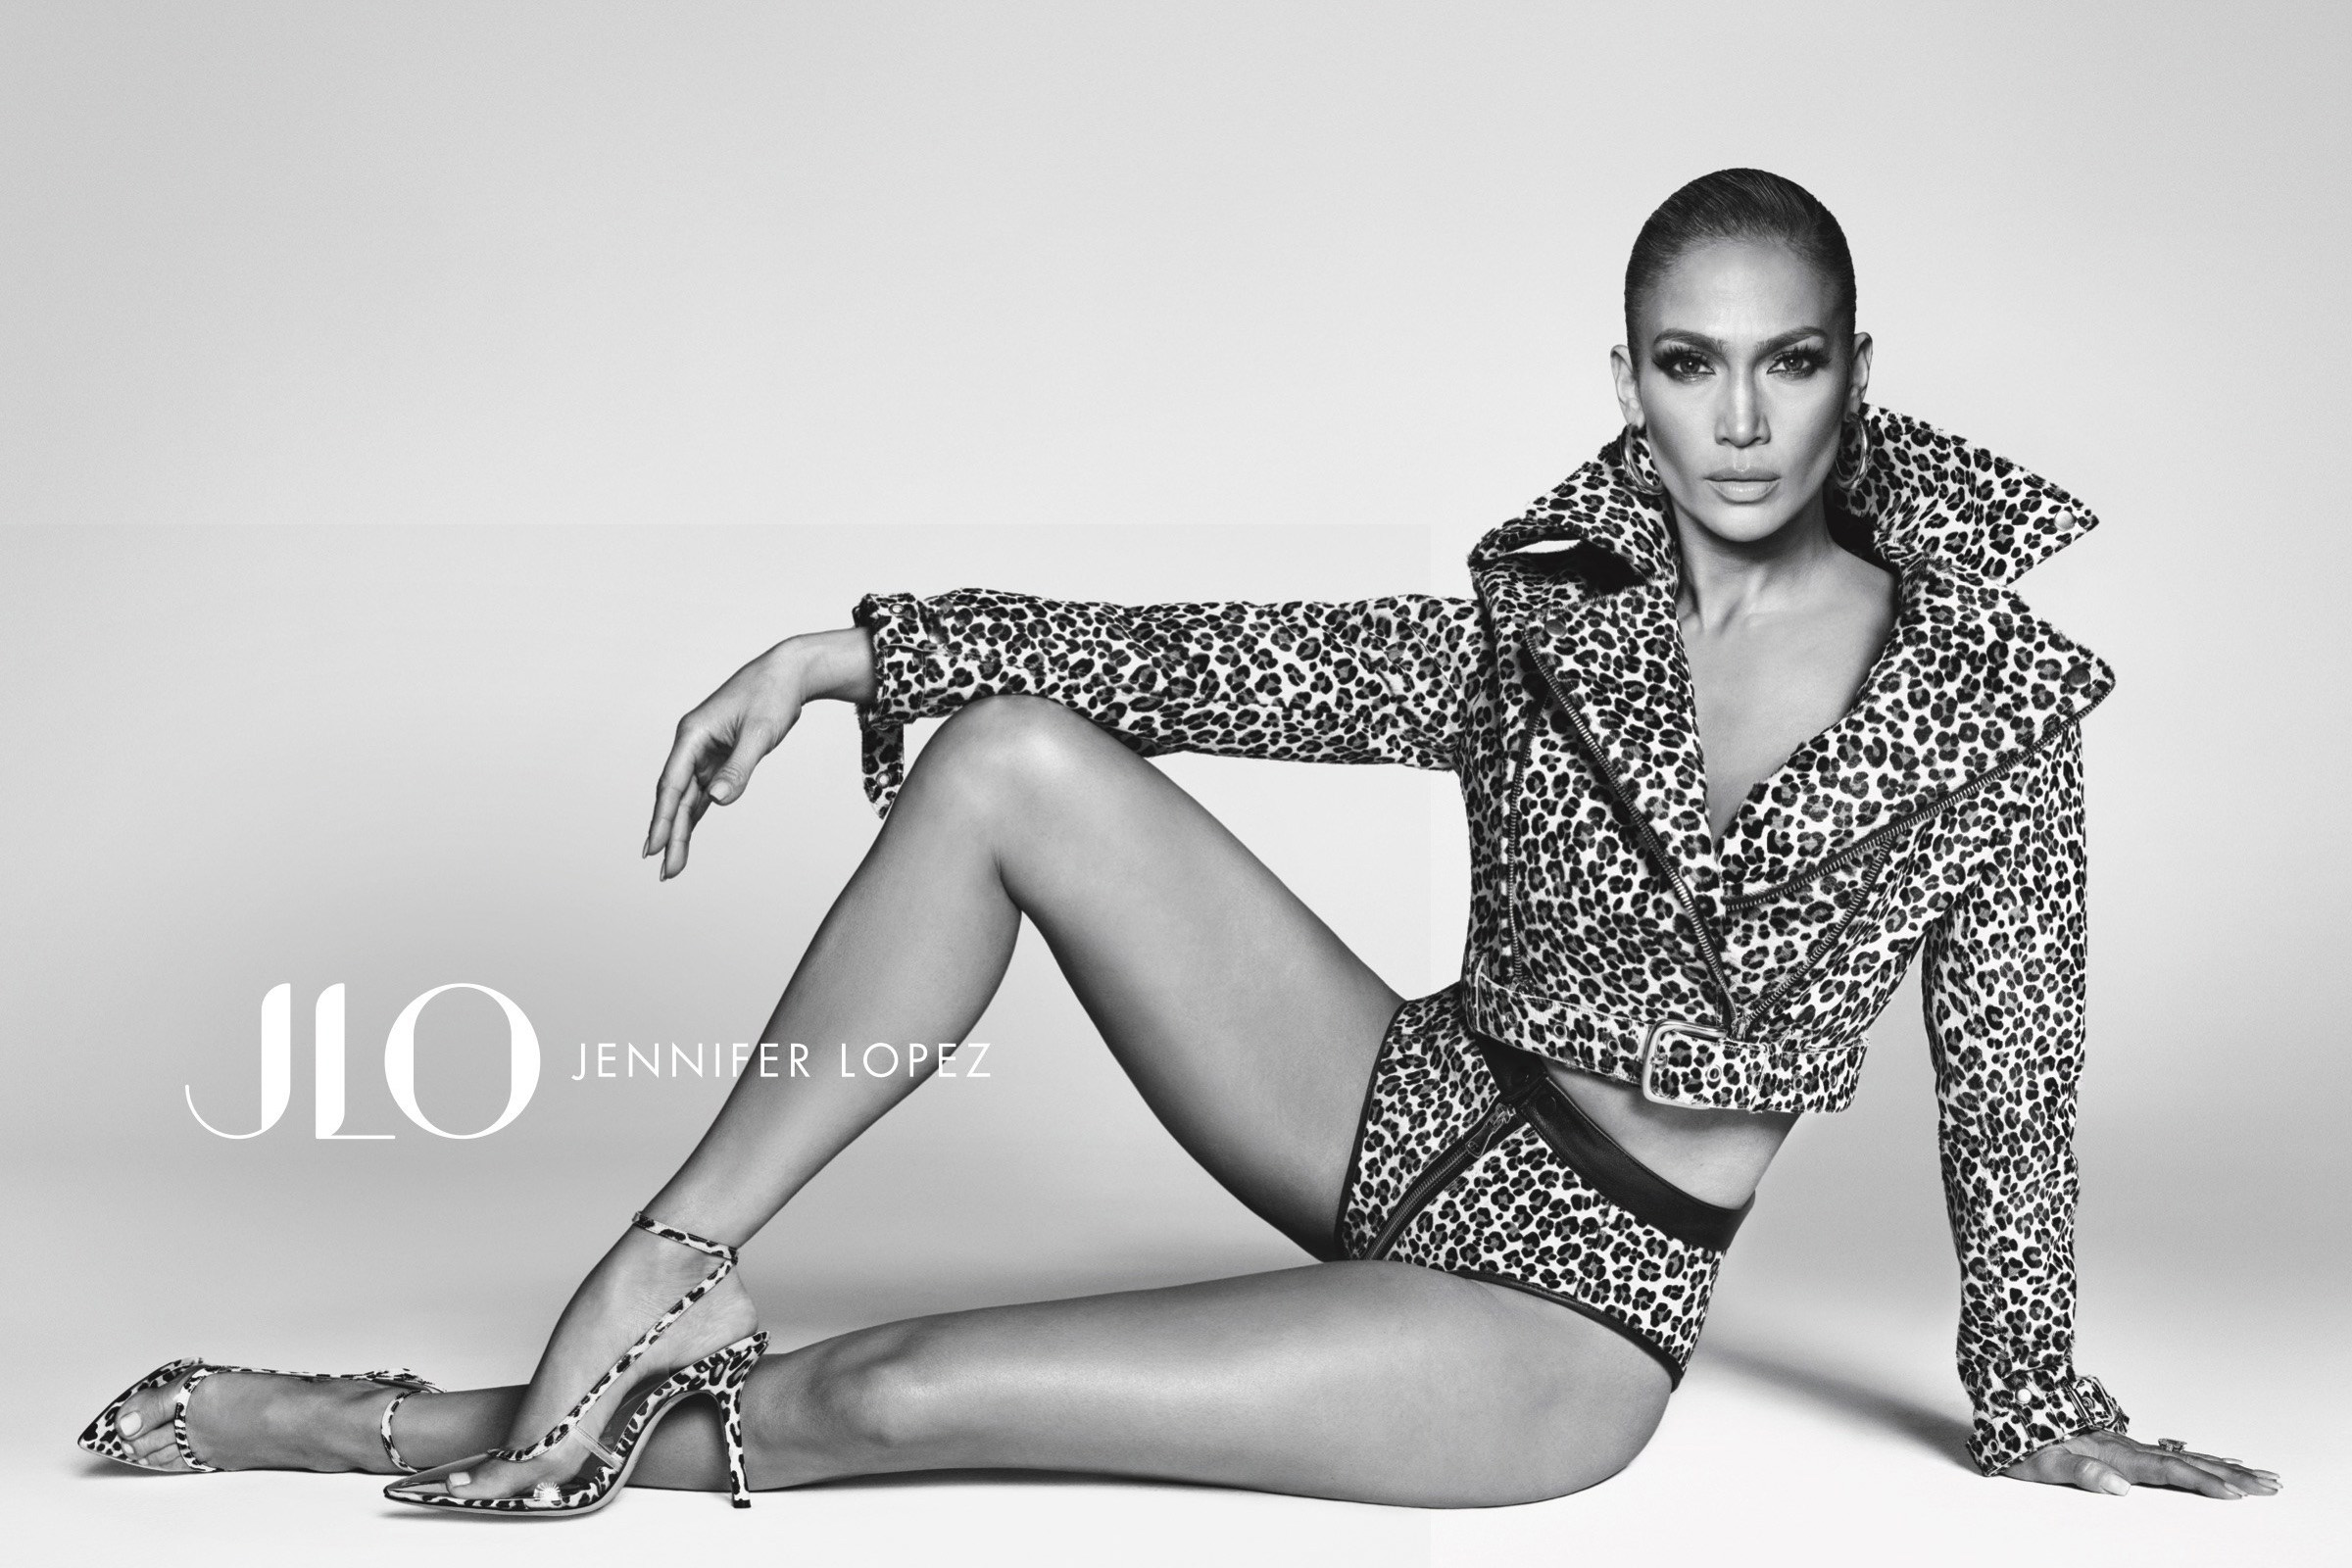 Jennifer Lopez partners with DSW owner on footwear line